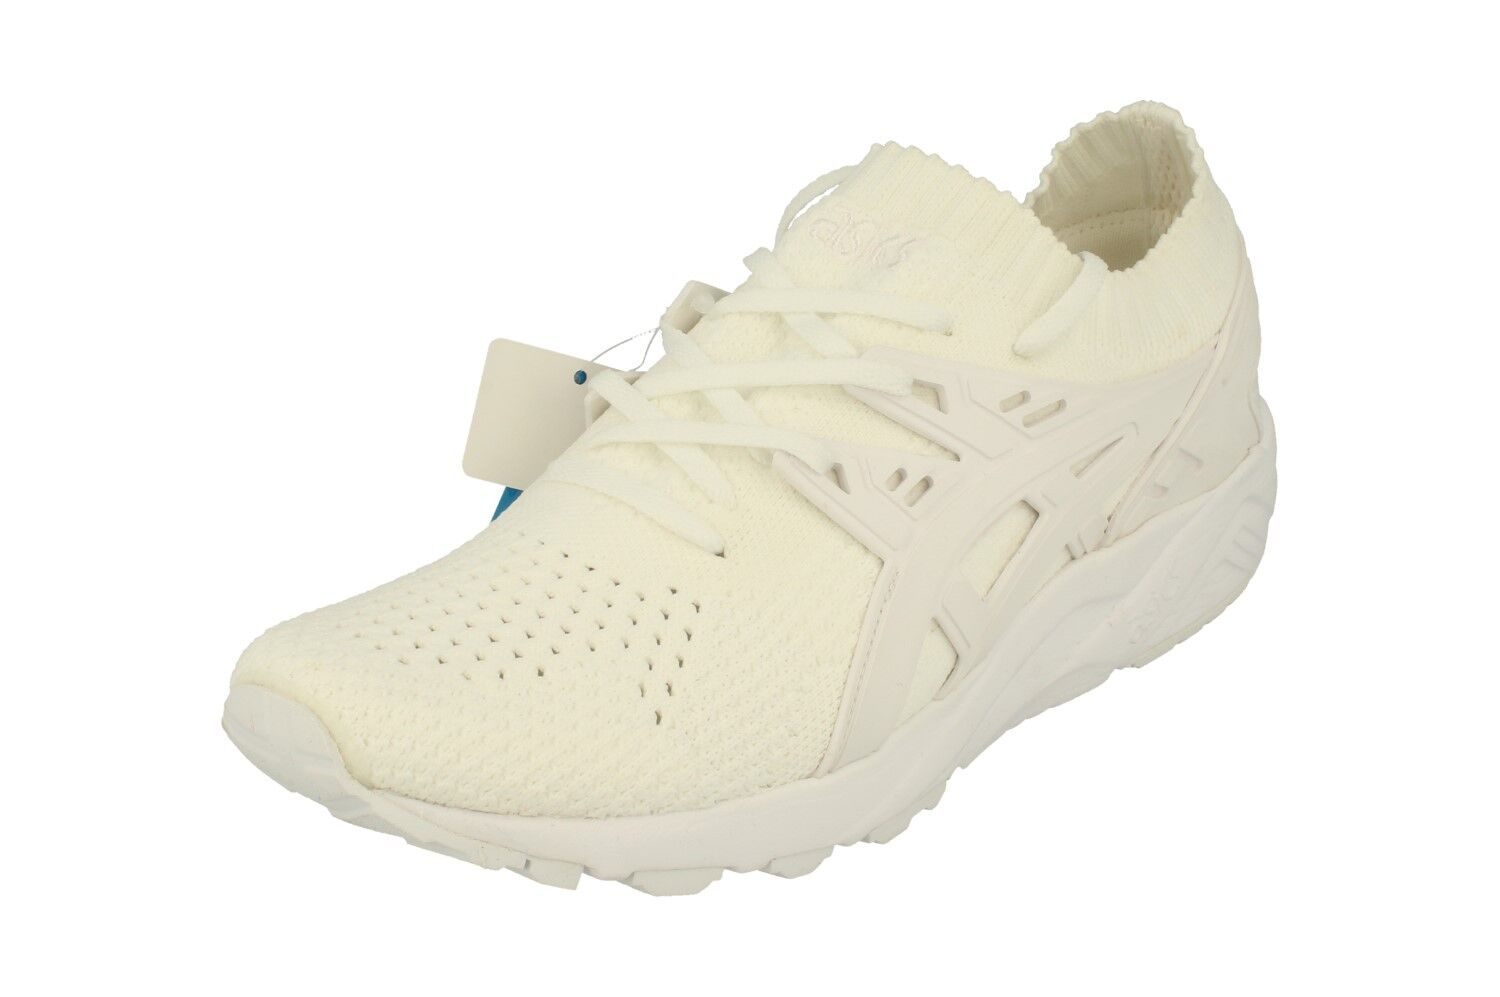 Asics Gel-Kayano Trainer Knit Mens Running Trainers H705N Sneakers shoes shoes shoes 0101 361d44